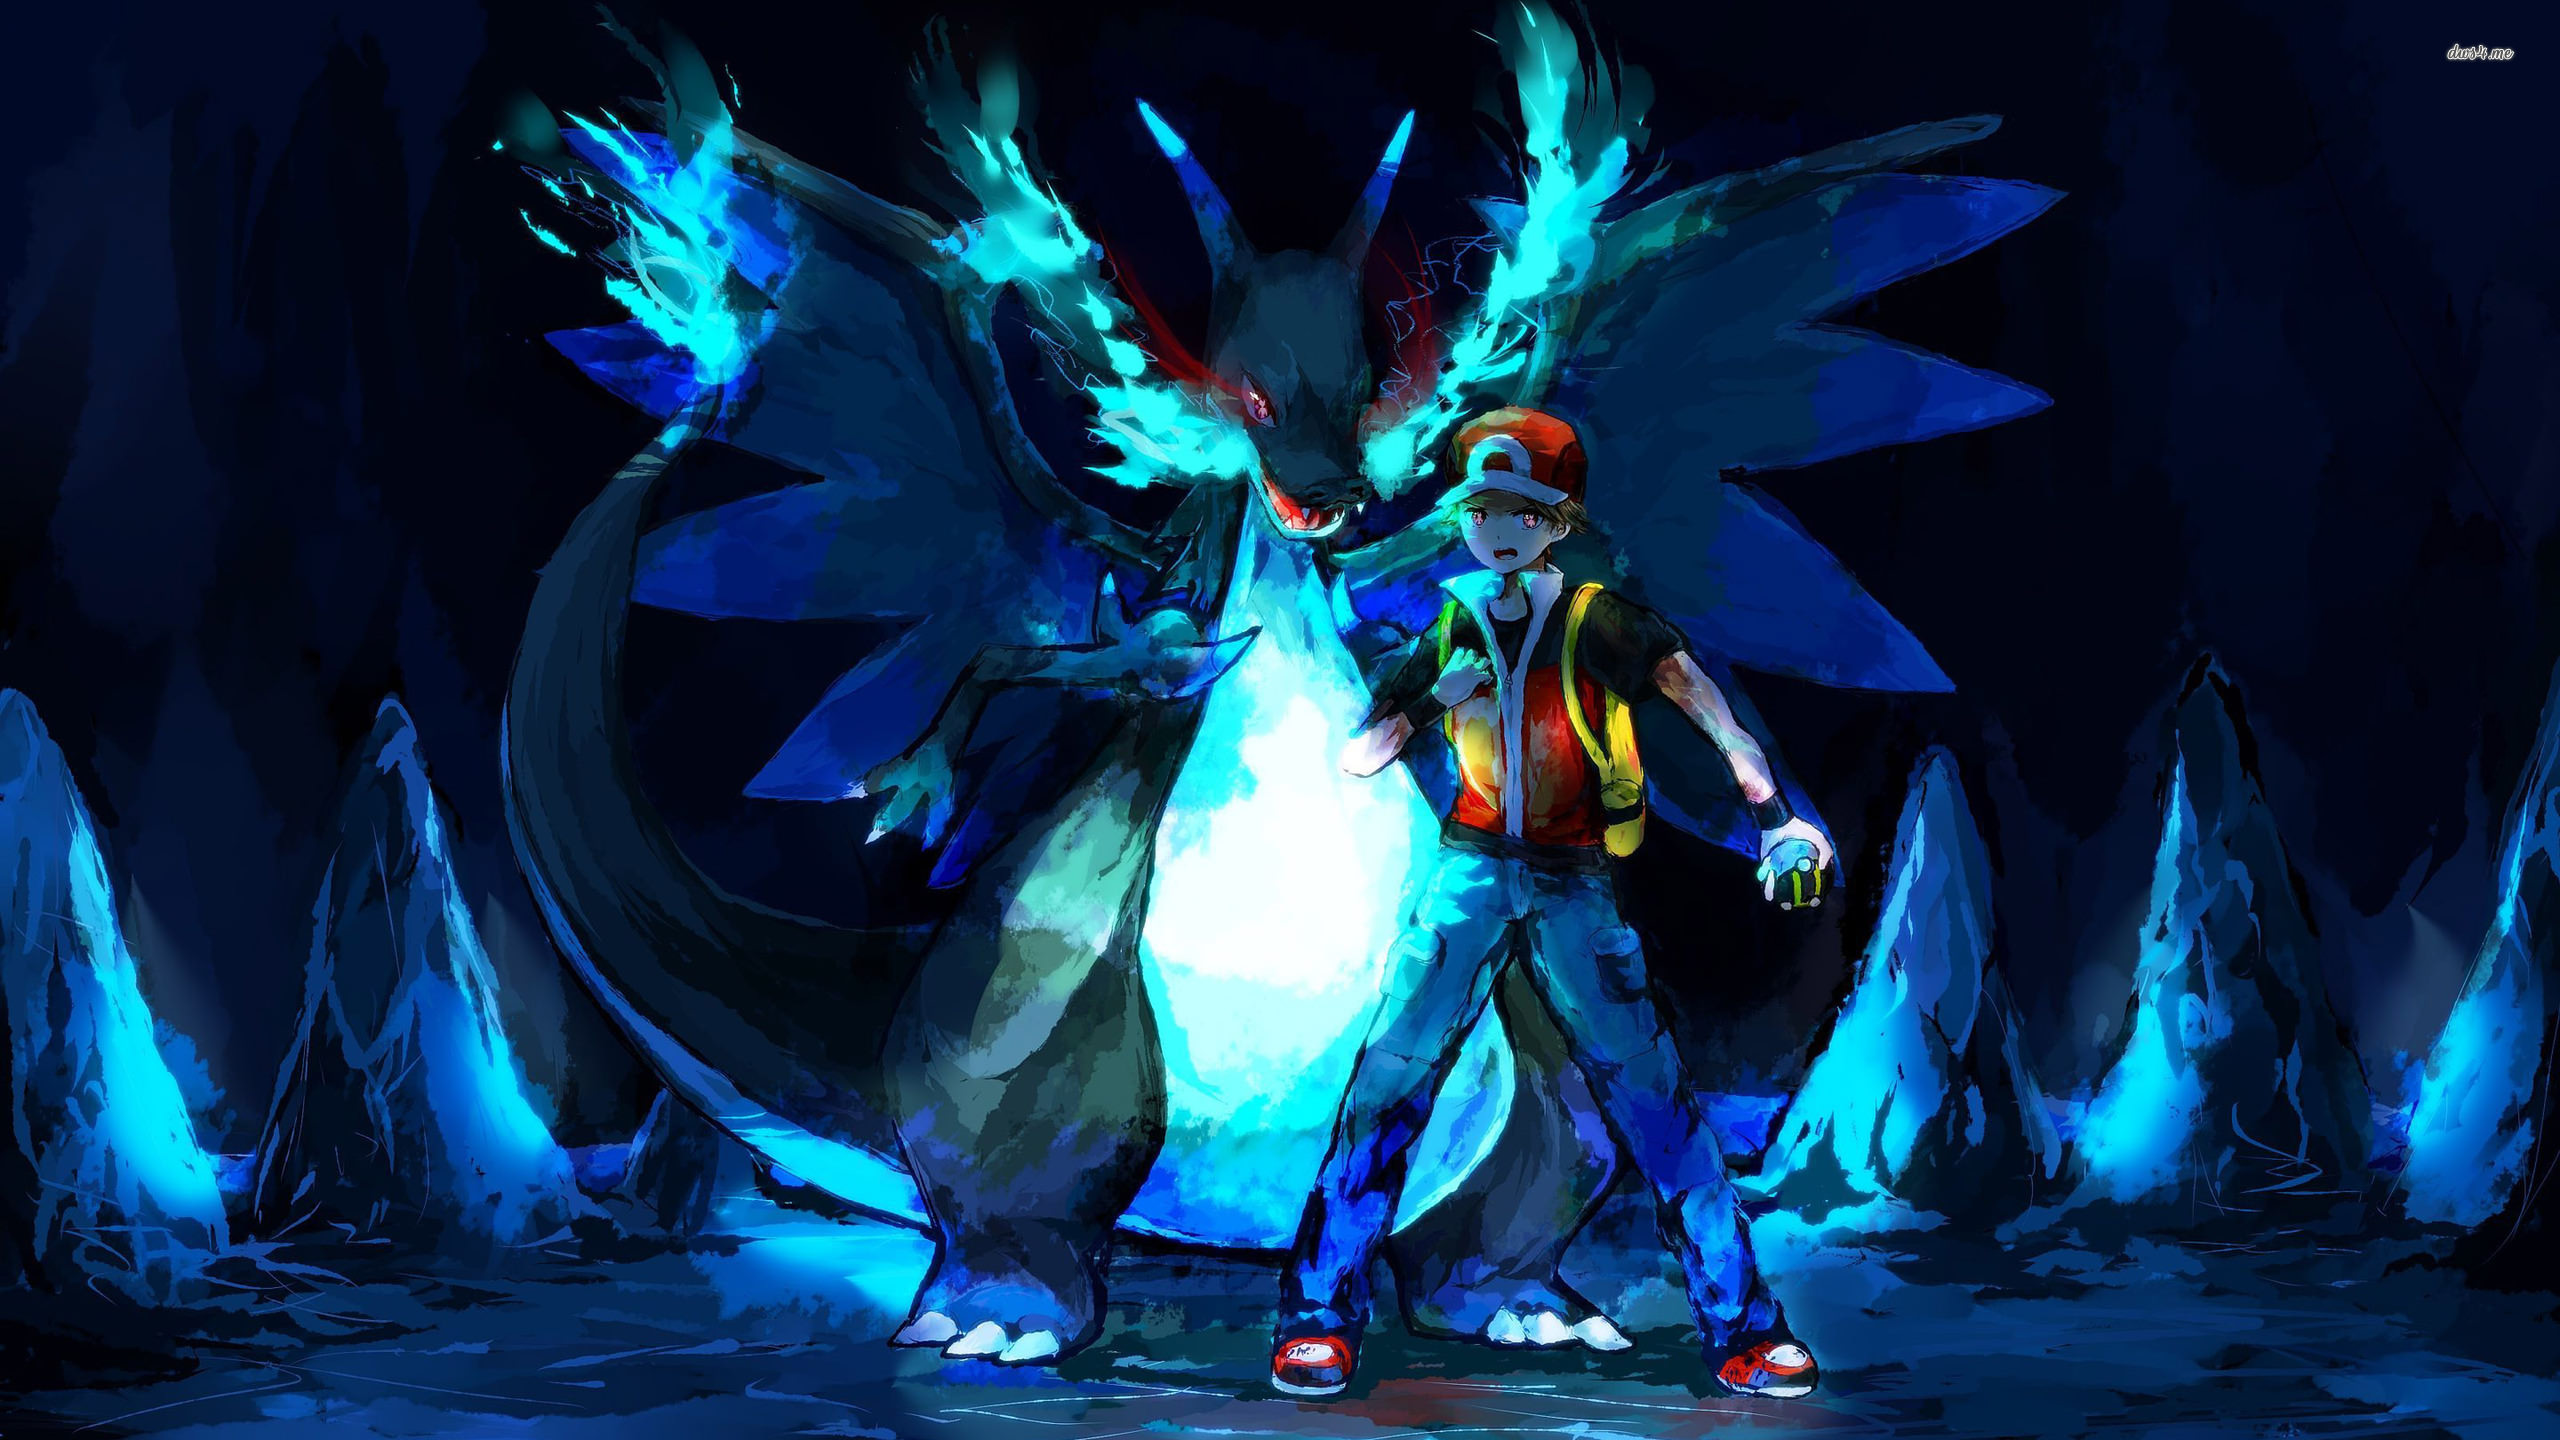 35+ Crazy Pokemon Backgrounds, Wallpapers, Images